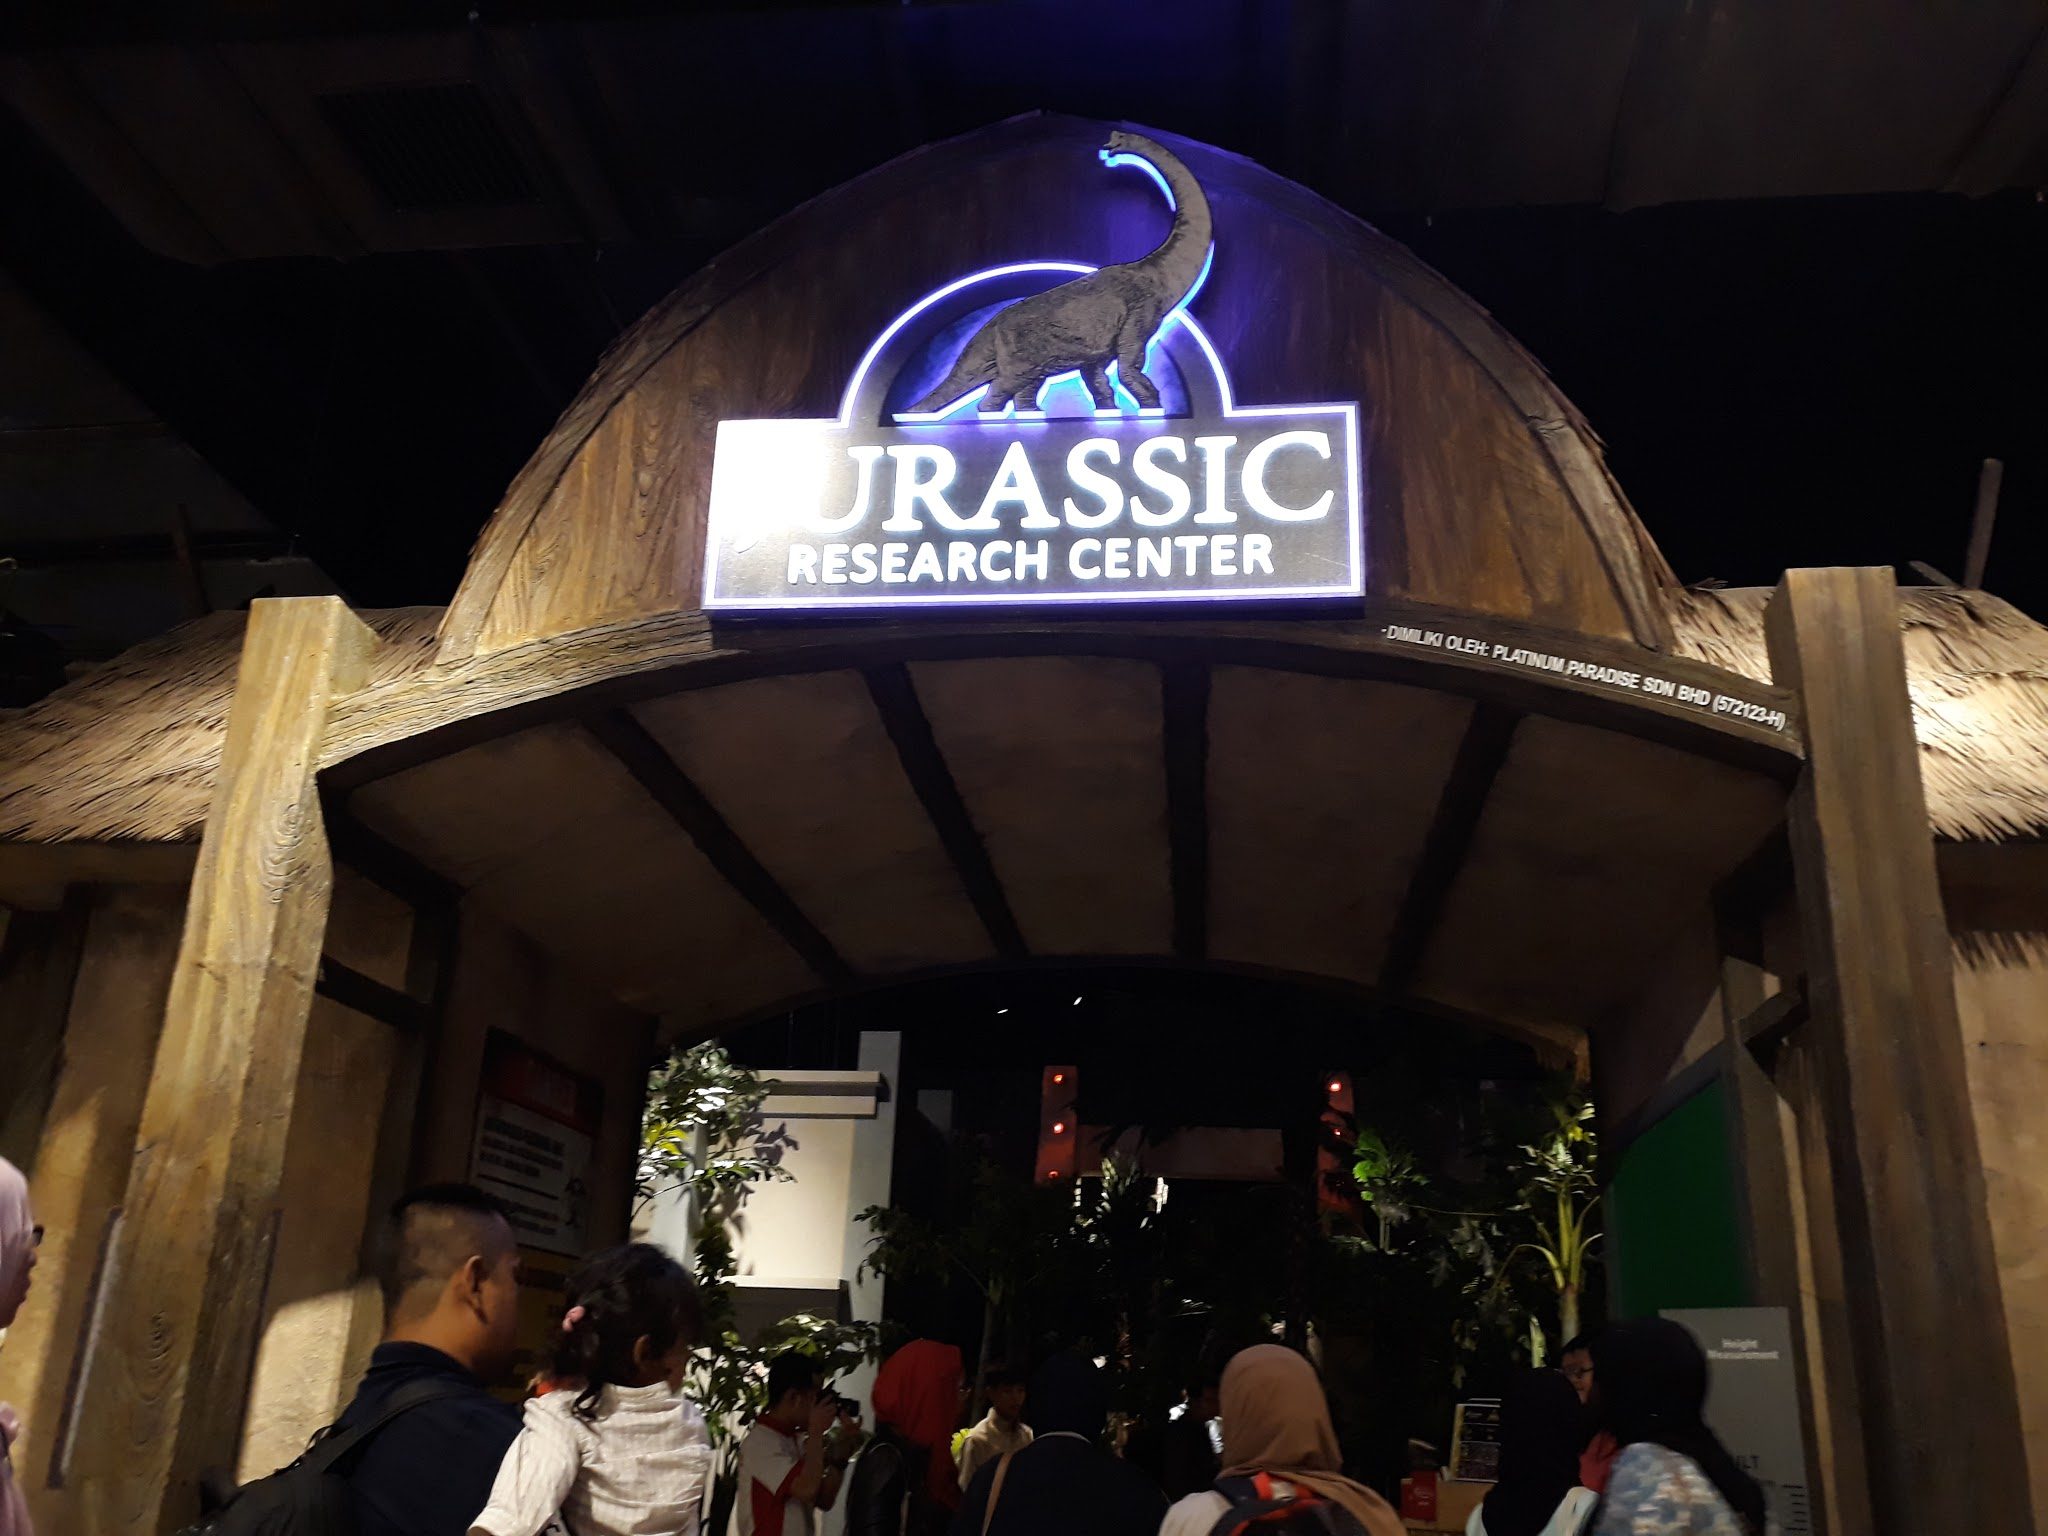 Resorts World Genting SkyAvenue Attractions, resorts world genting, sskyavenue level 4 attractions, genting highland, alive musuem, dinosaur alive, dinosaur park, ripley's believe it or not odditorium,The Jurassic Research Center, Zombie Outbreak,